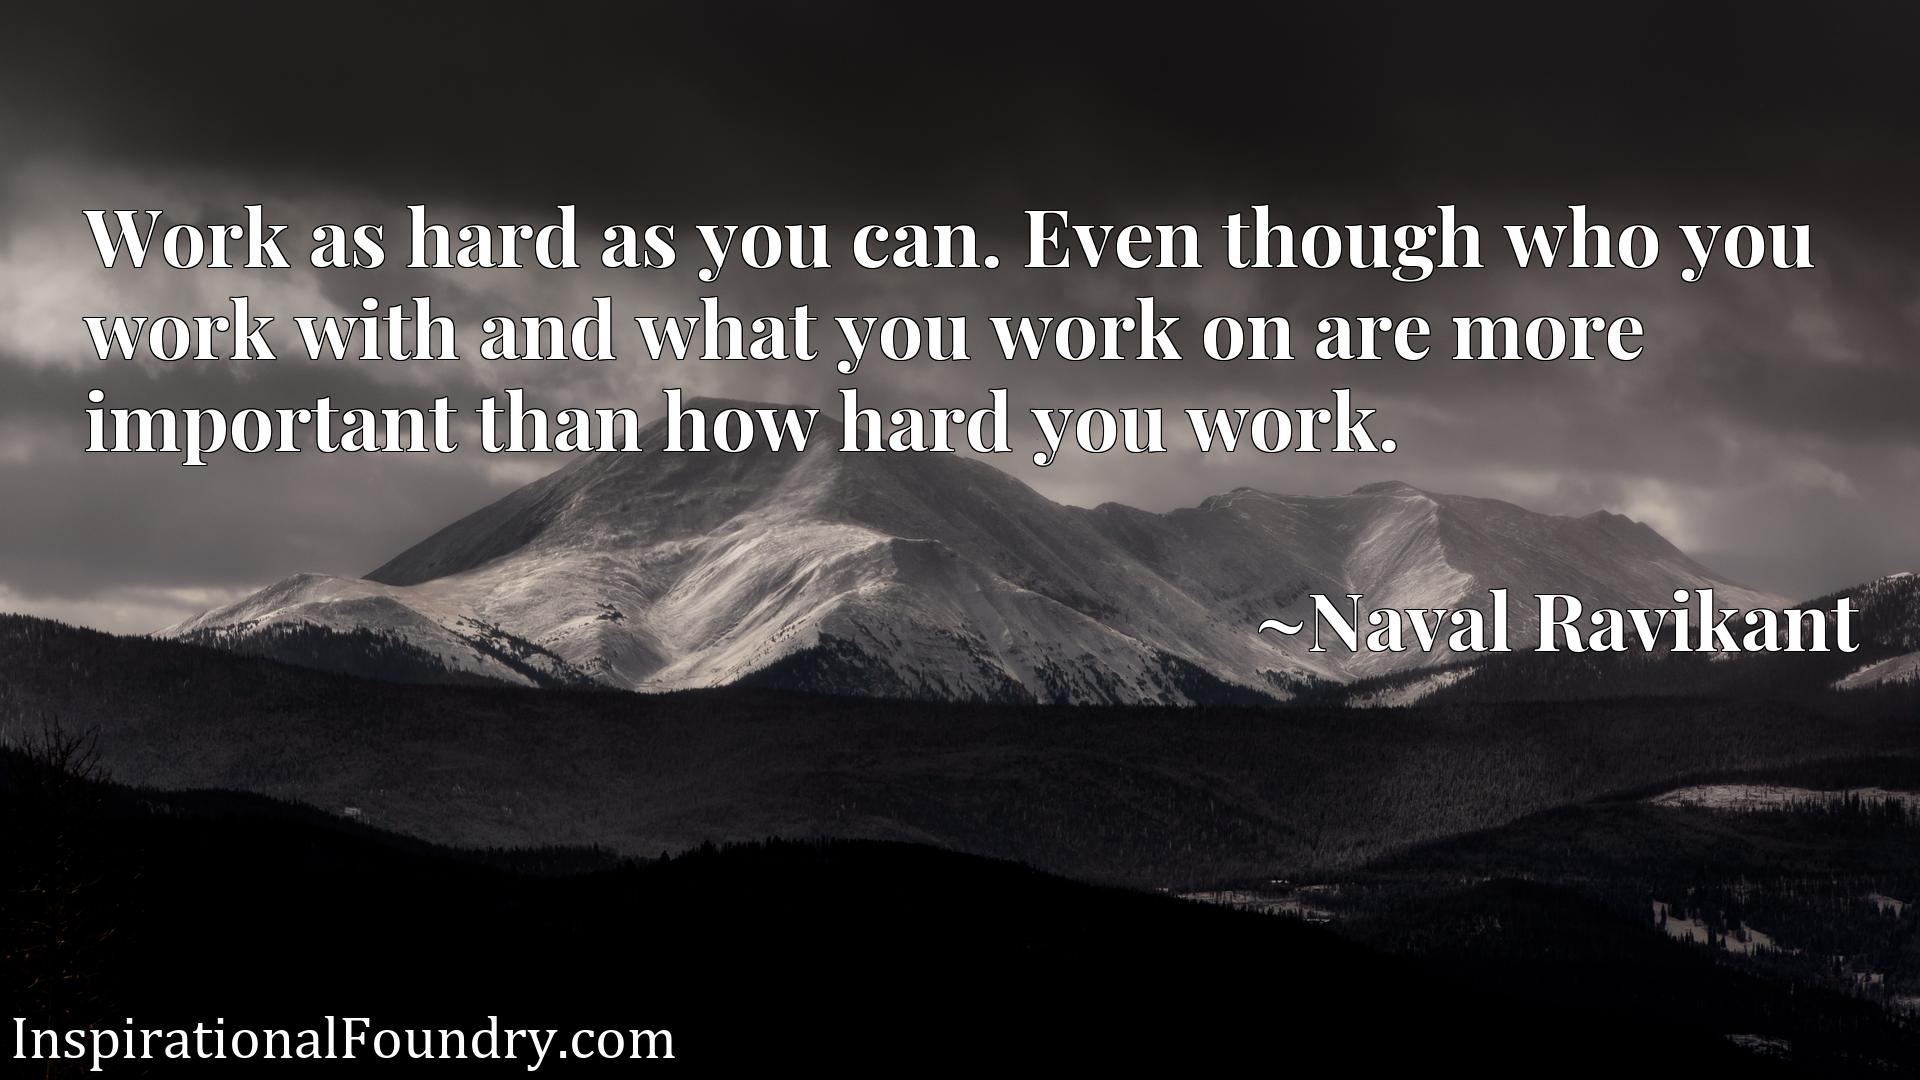 Work as hard as you can. Even though who you work with and what you work on are more important than how hard you work.